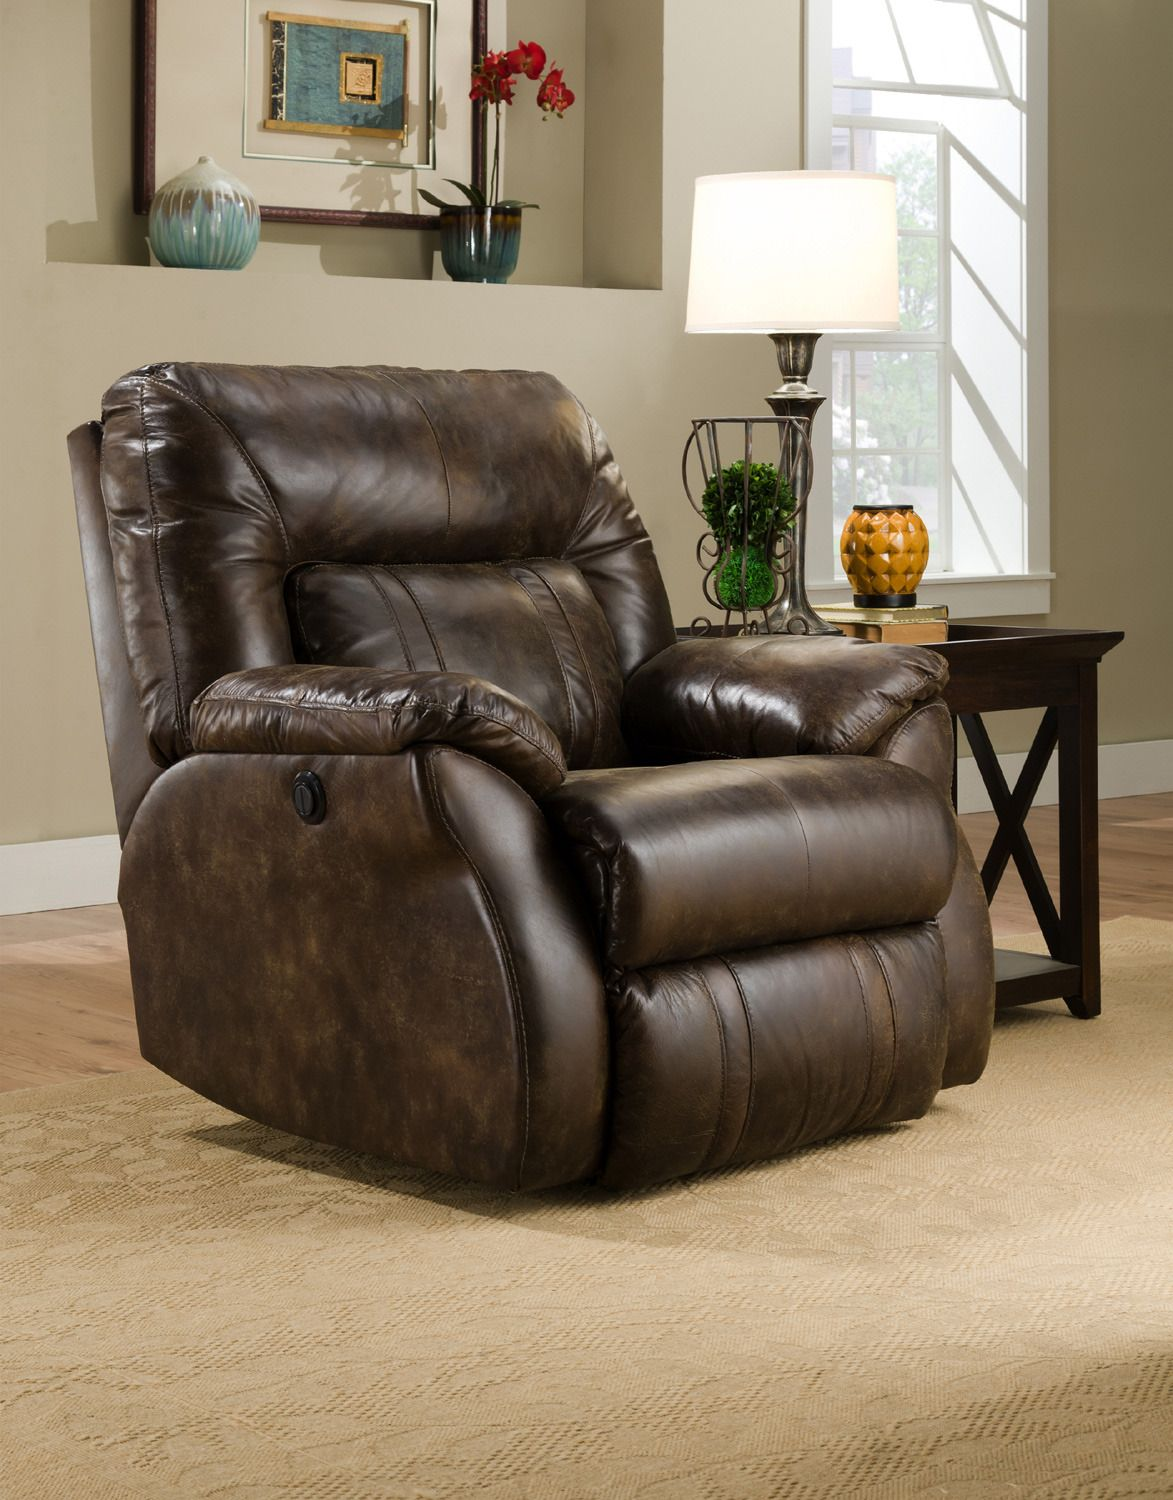 Cosmo Wall Hugger Recliner Southern Motion Furniture Home Gallery Stores Rocker Recliners Recliner Furniture